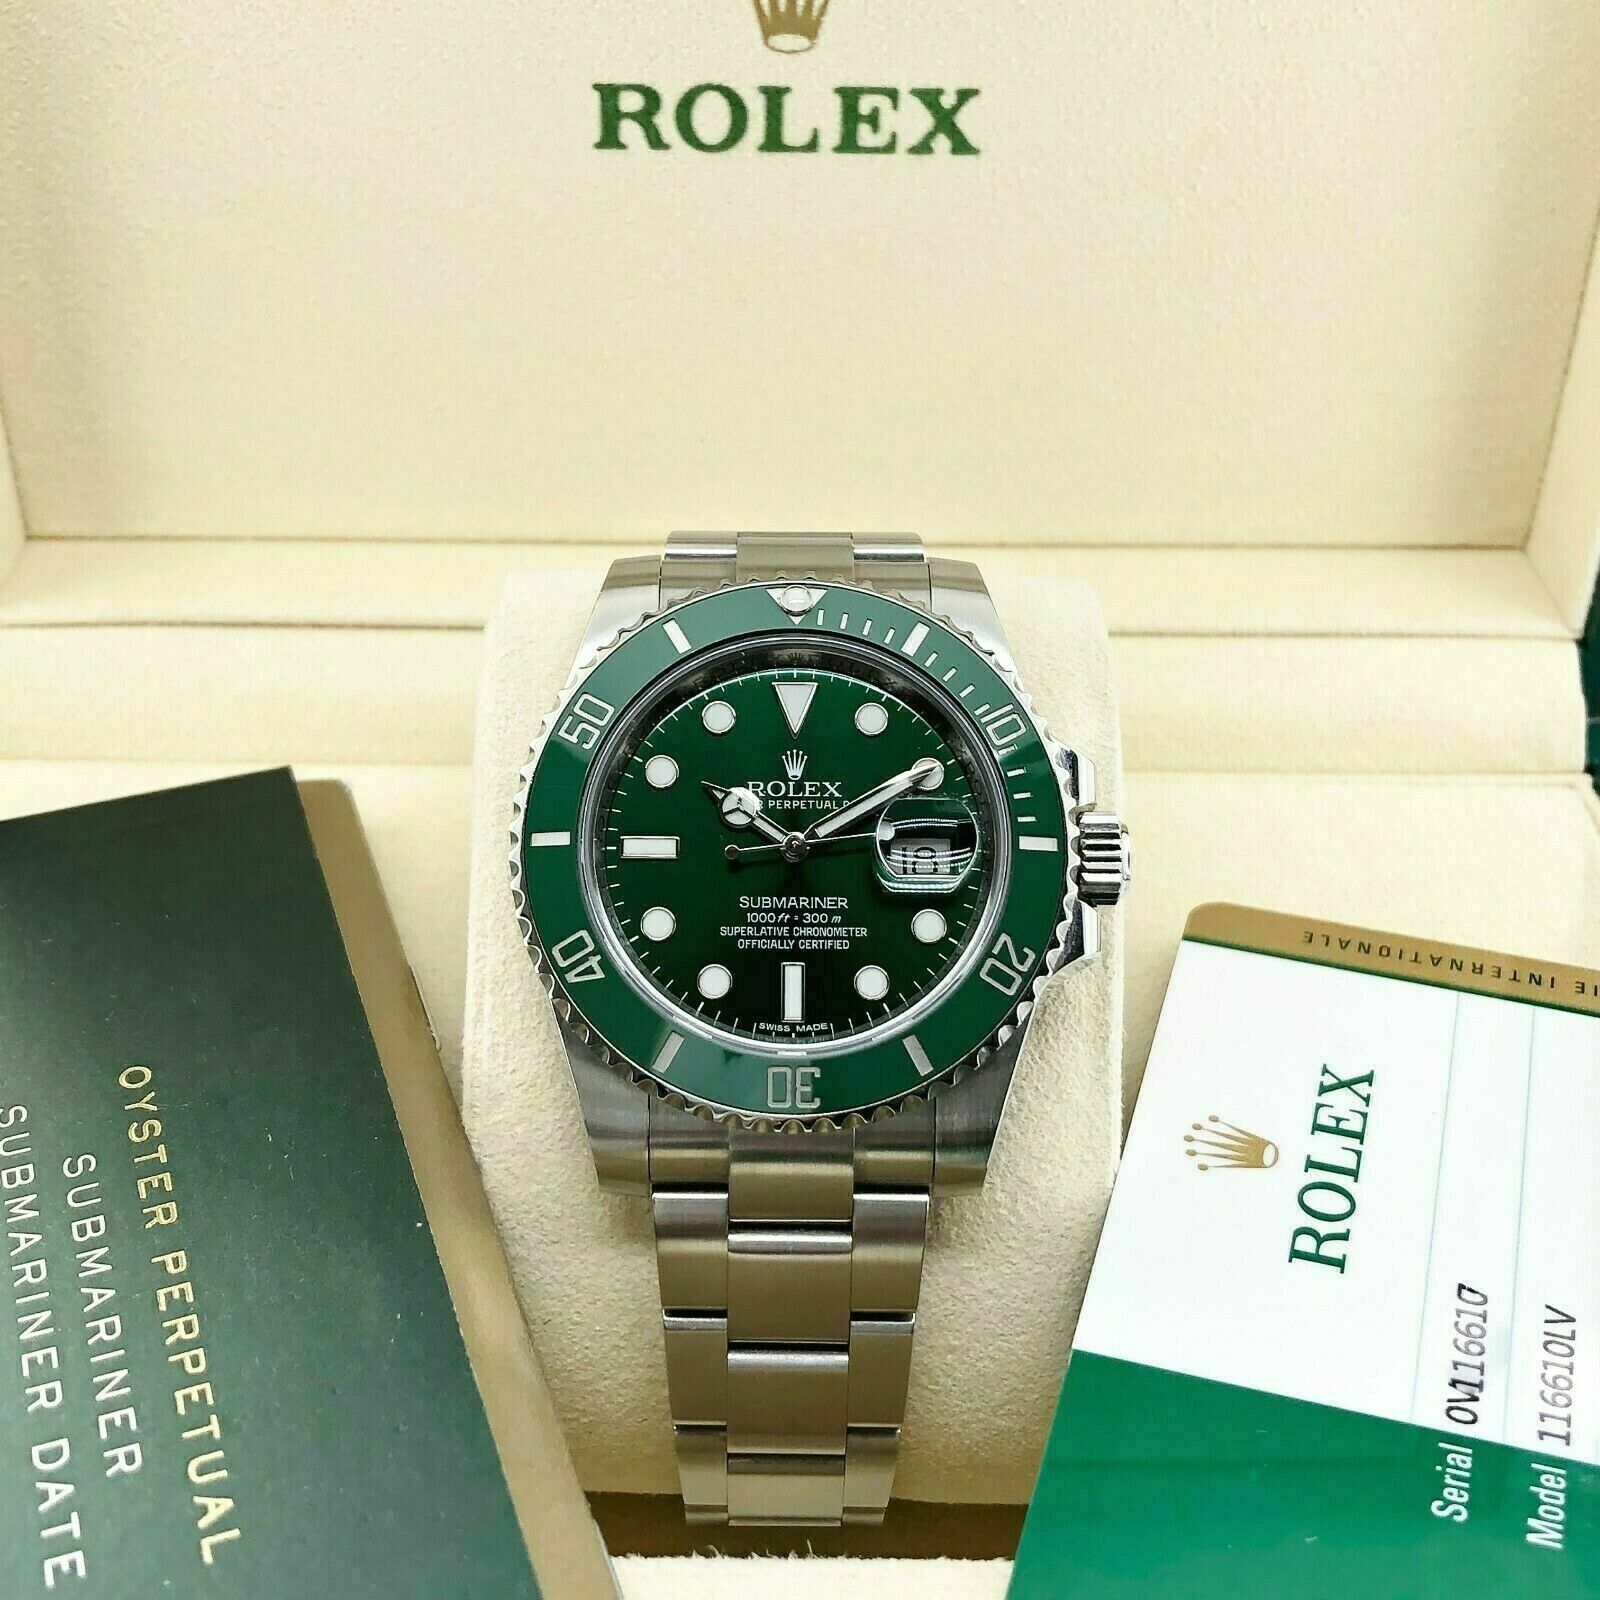 Rolex Ceramic Hulk Submariner Date Stainless Steel Watch Ref 116610LV Box Card